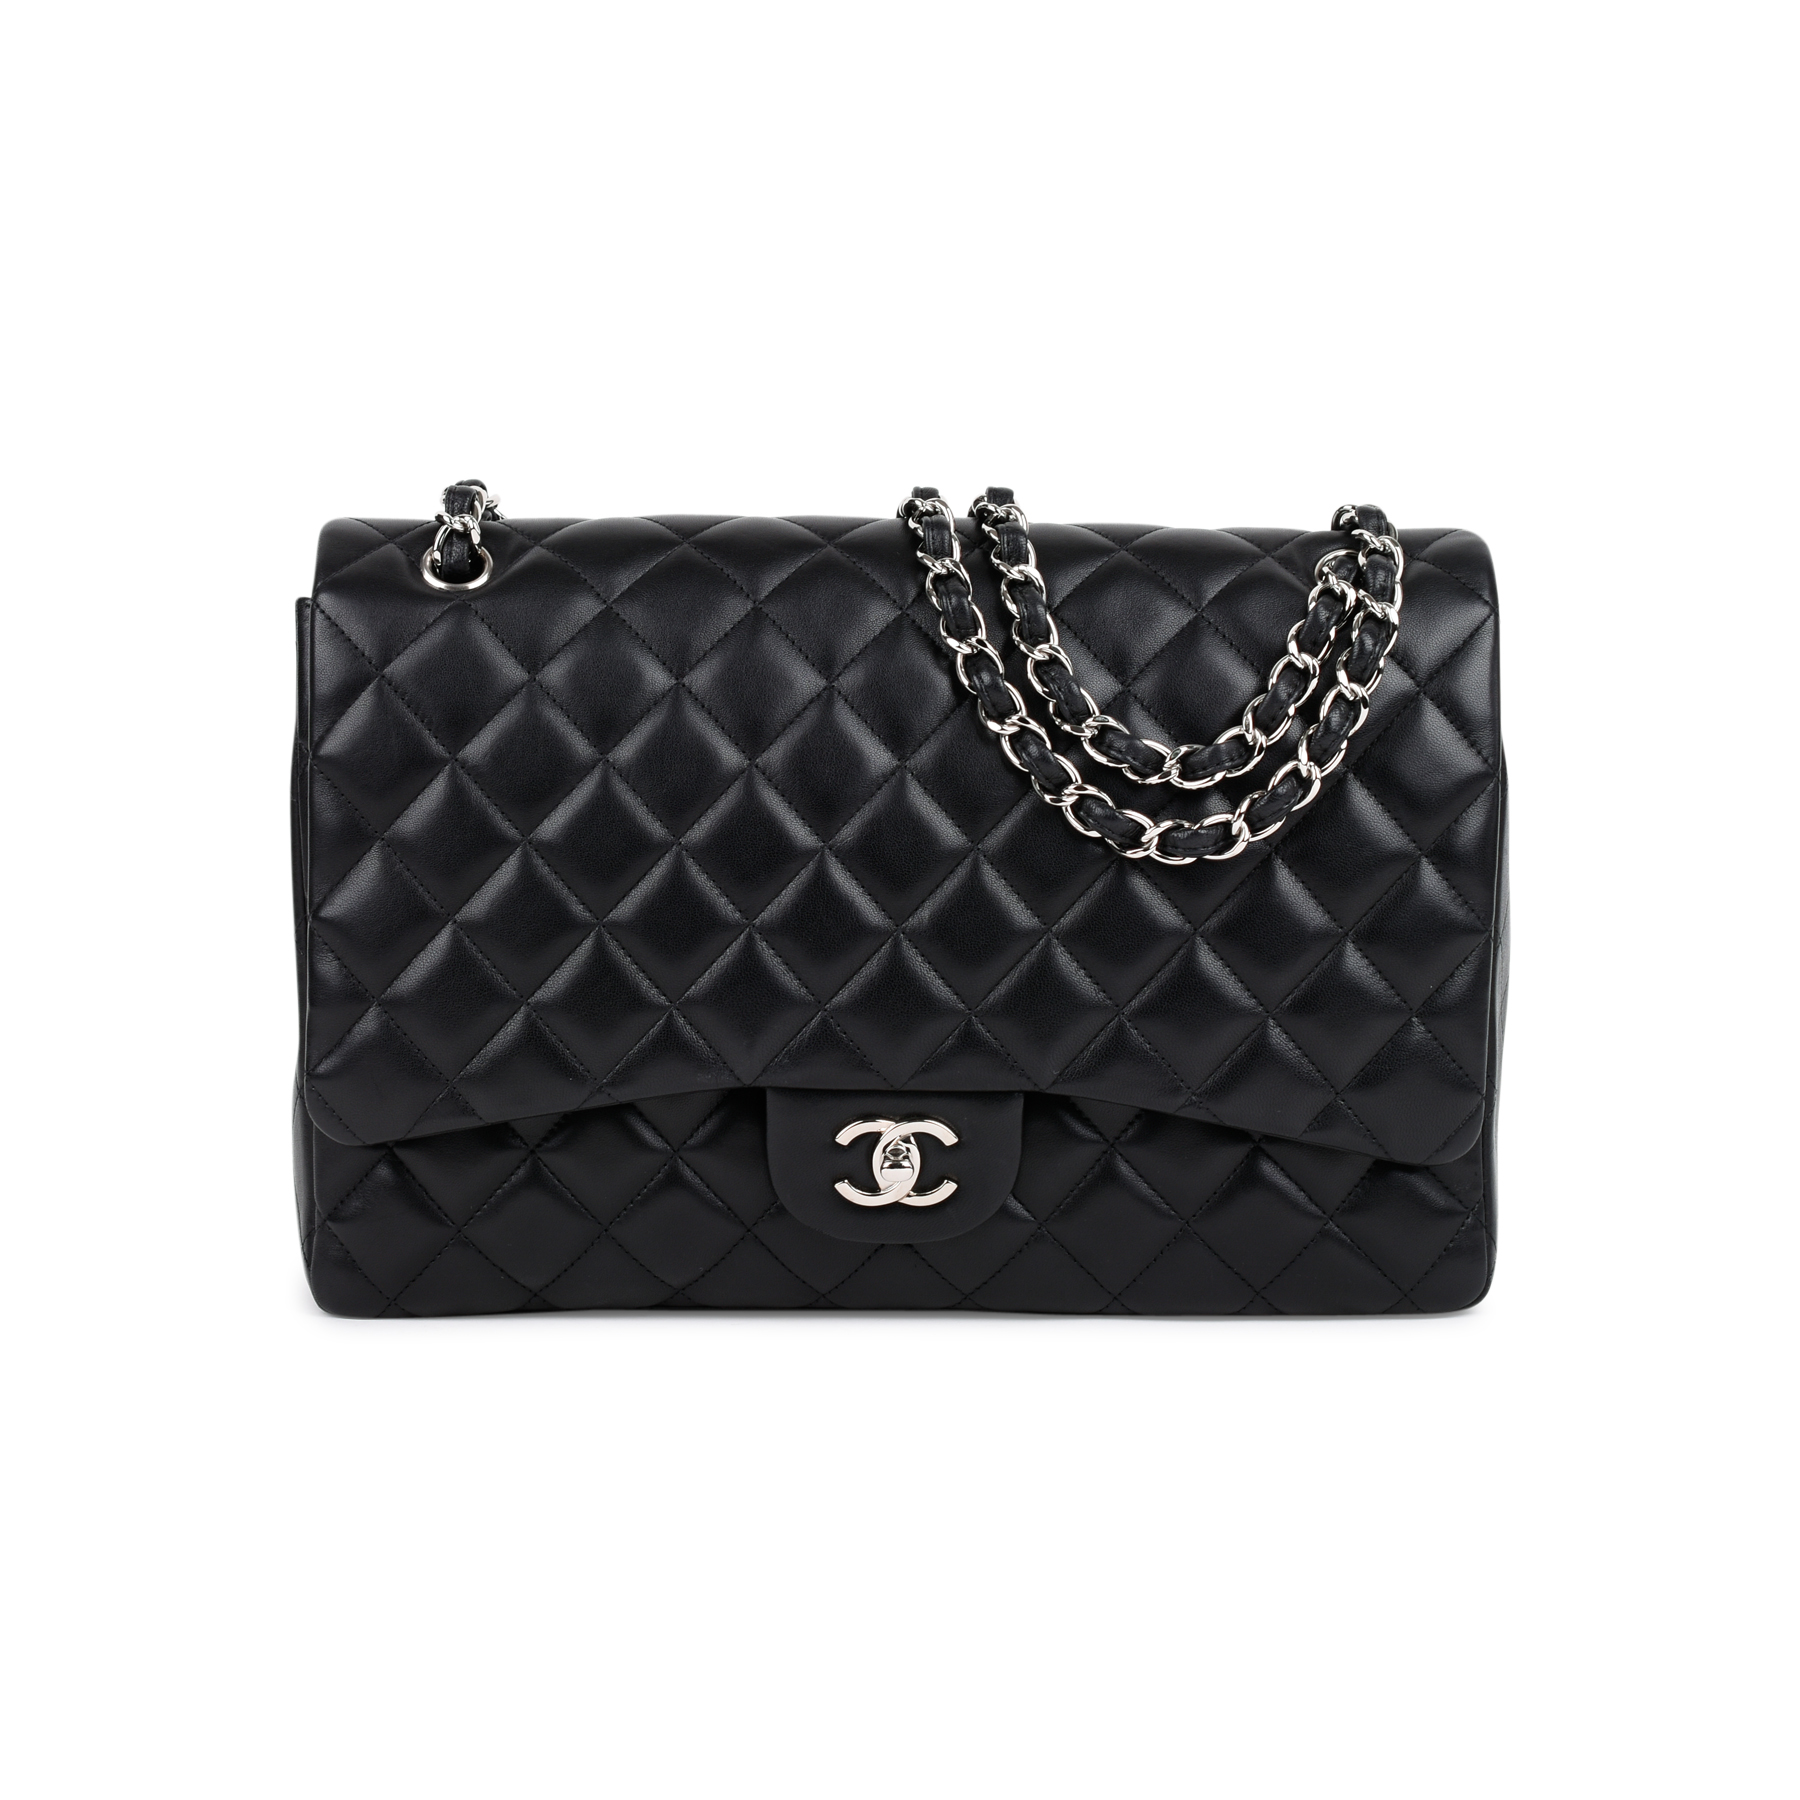 de0470c42e00 Authentic Second Hand Chanel Classic Maxi Flap Bag (PSS-464-00005) | THE  FIFTH COLLECTION